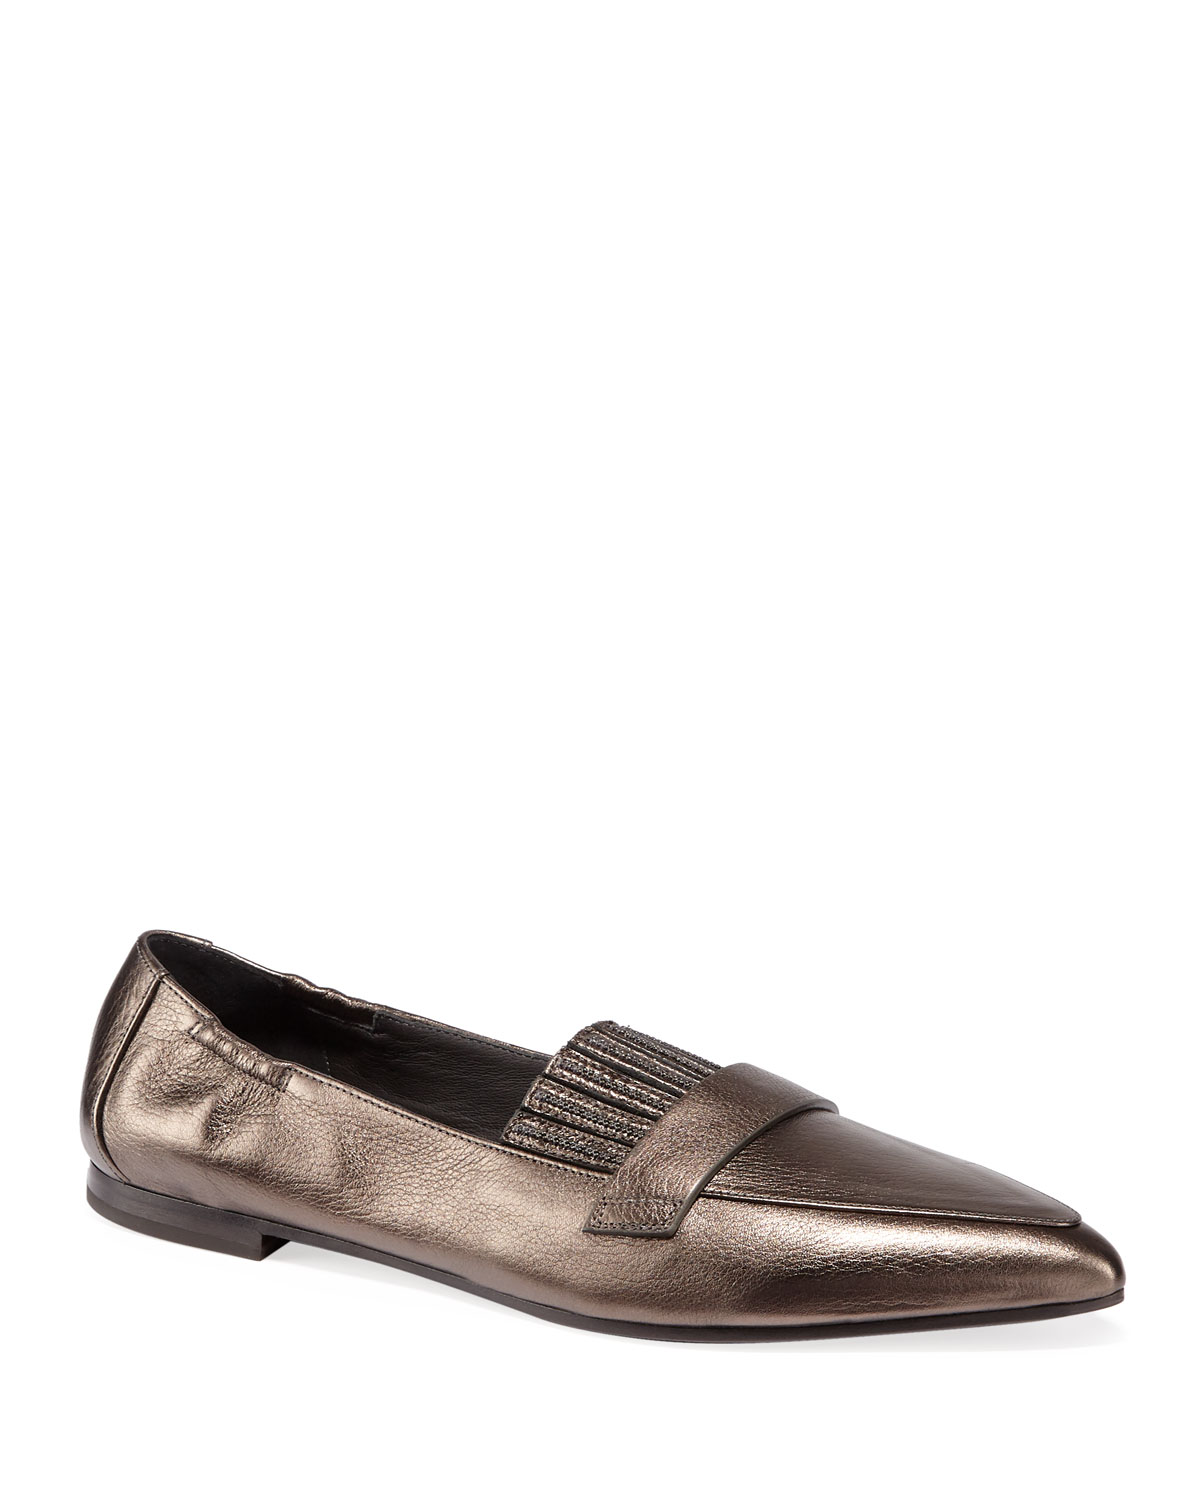 Metallic Leather Flats with Monili Fringe